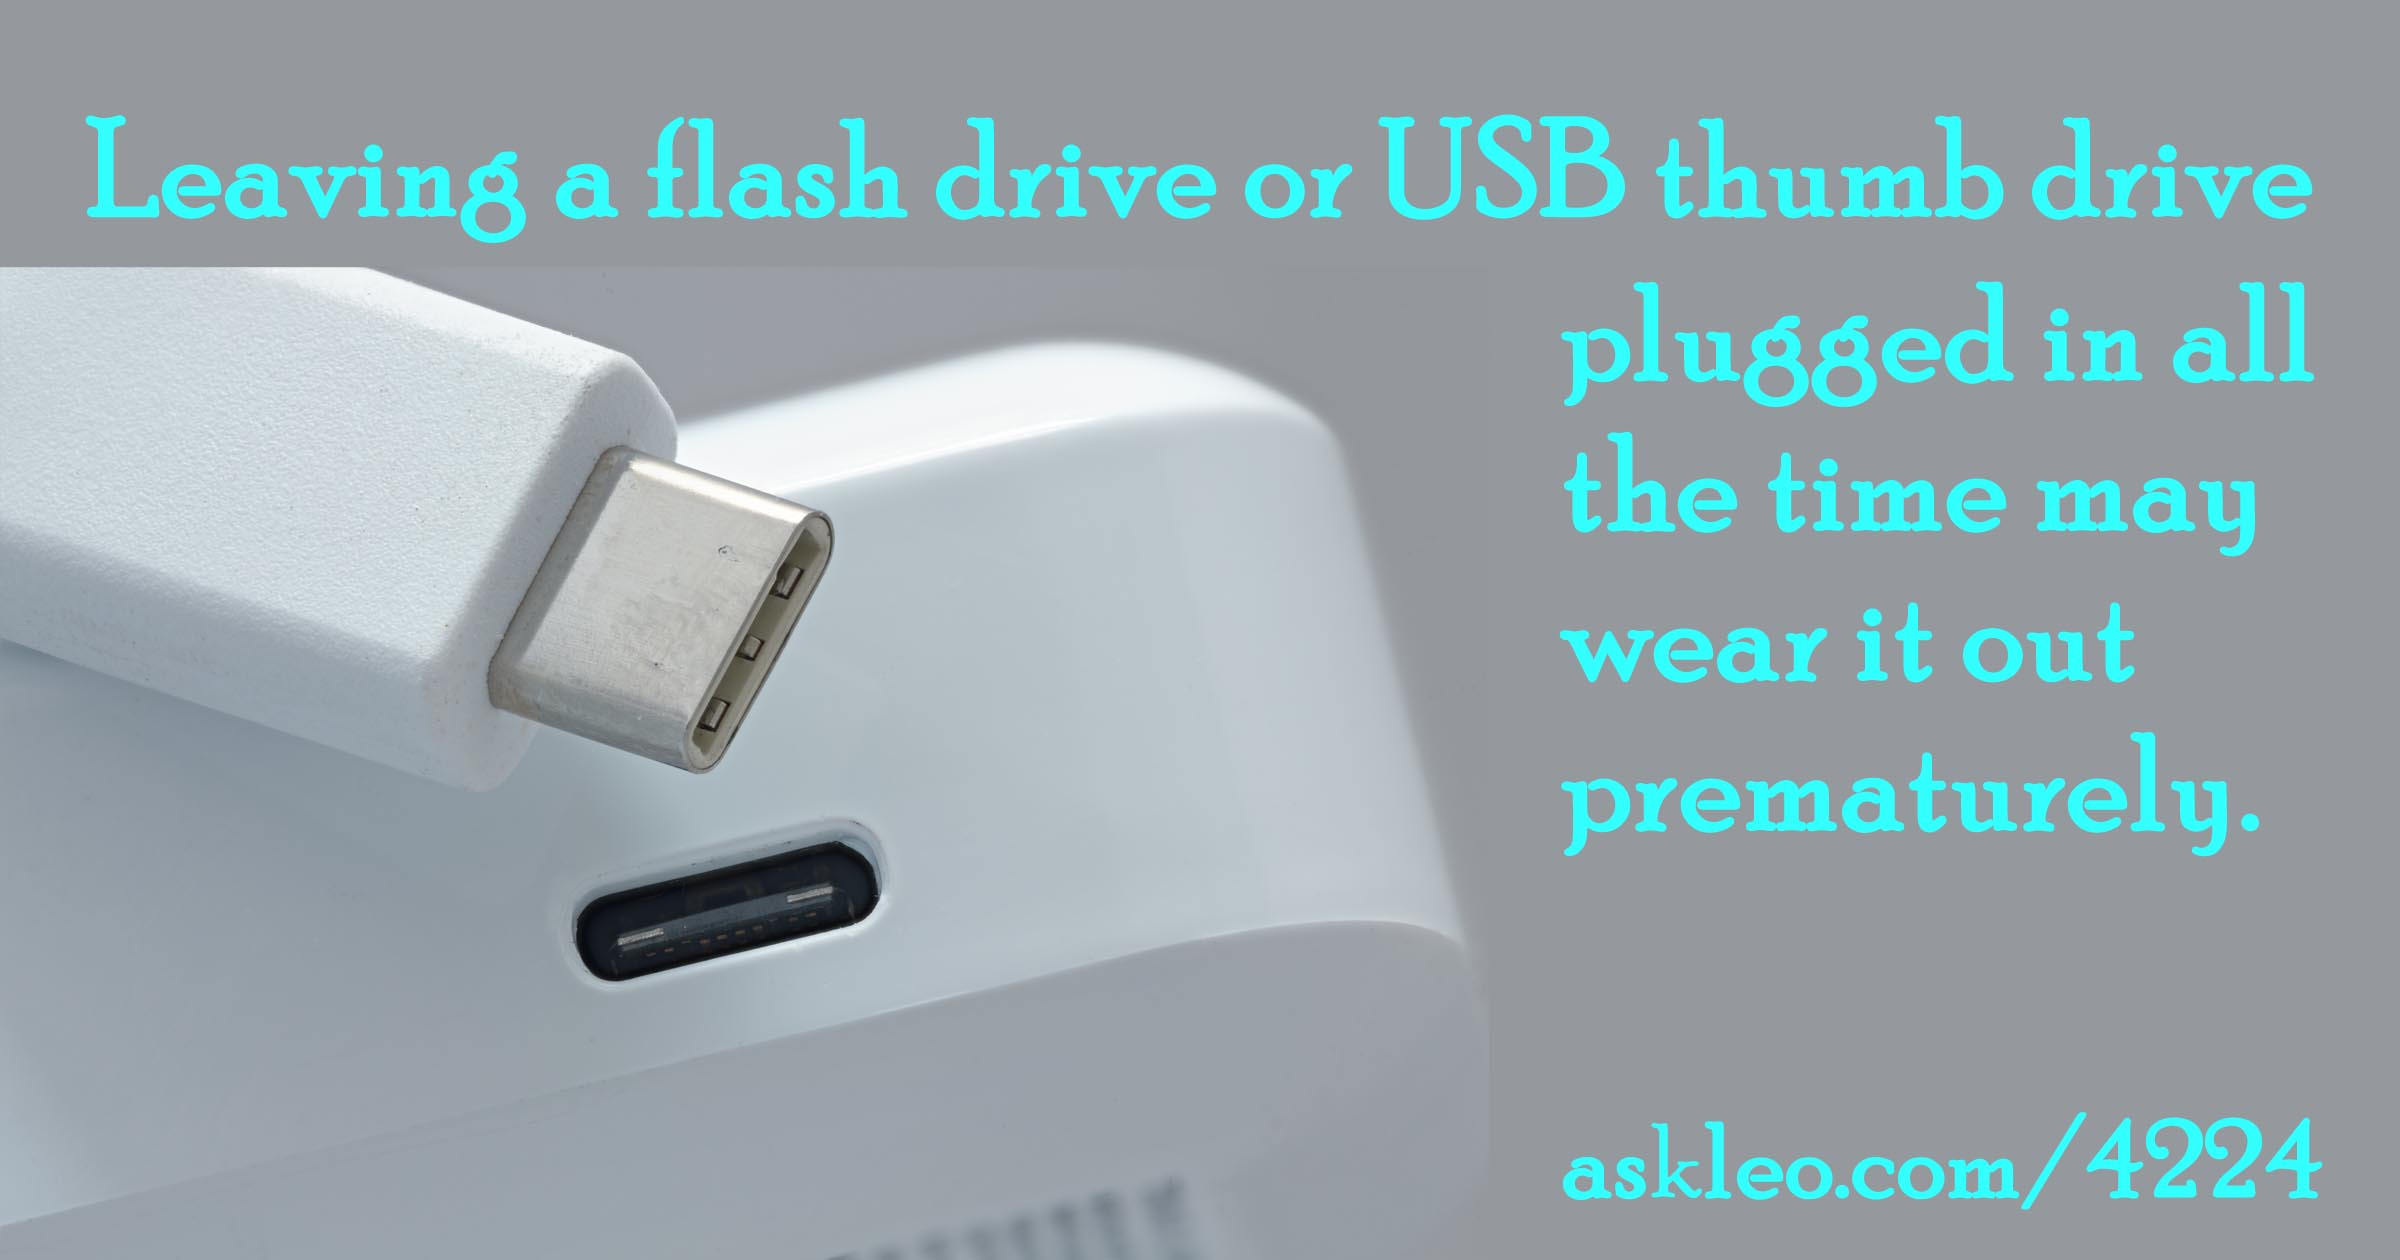 Is It Safe to Leave a Flash Drive Plugged In All the Time?